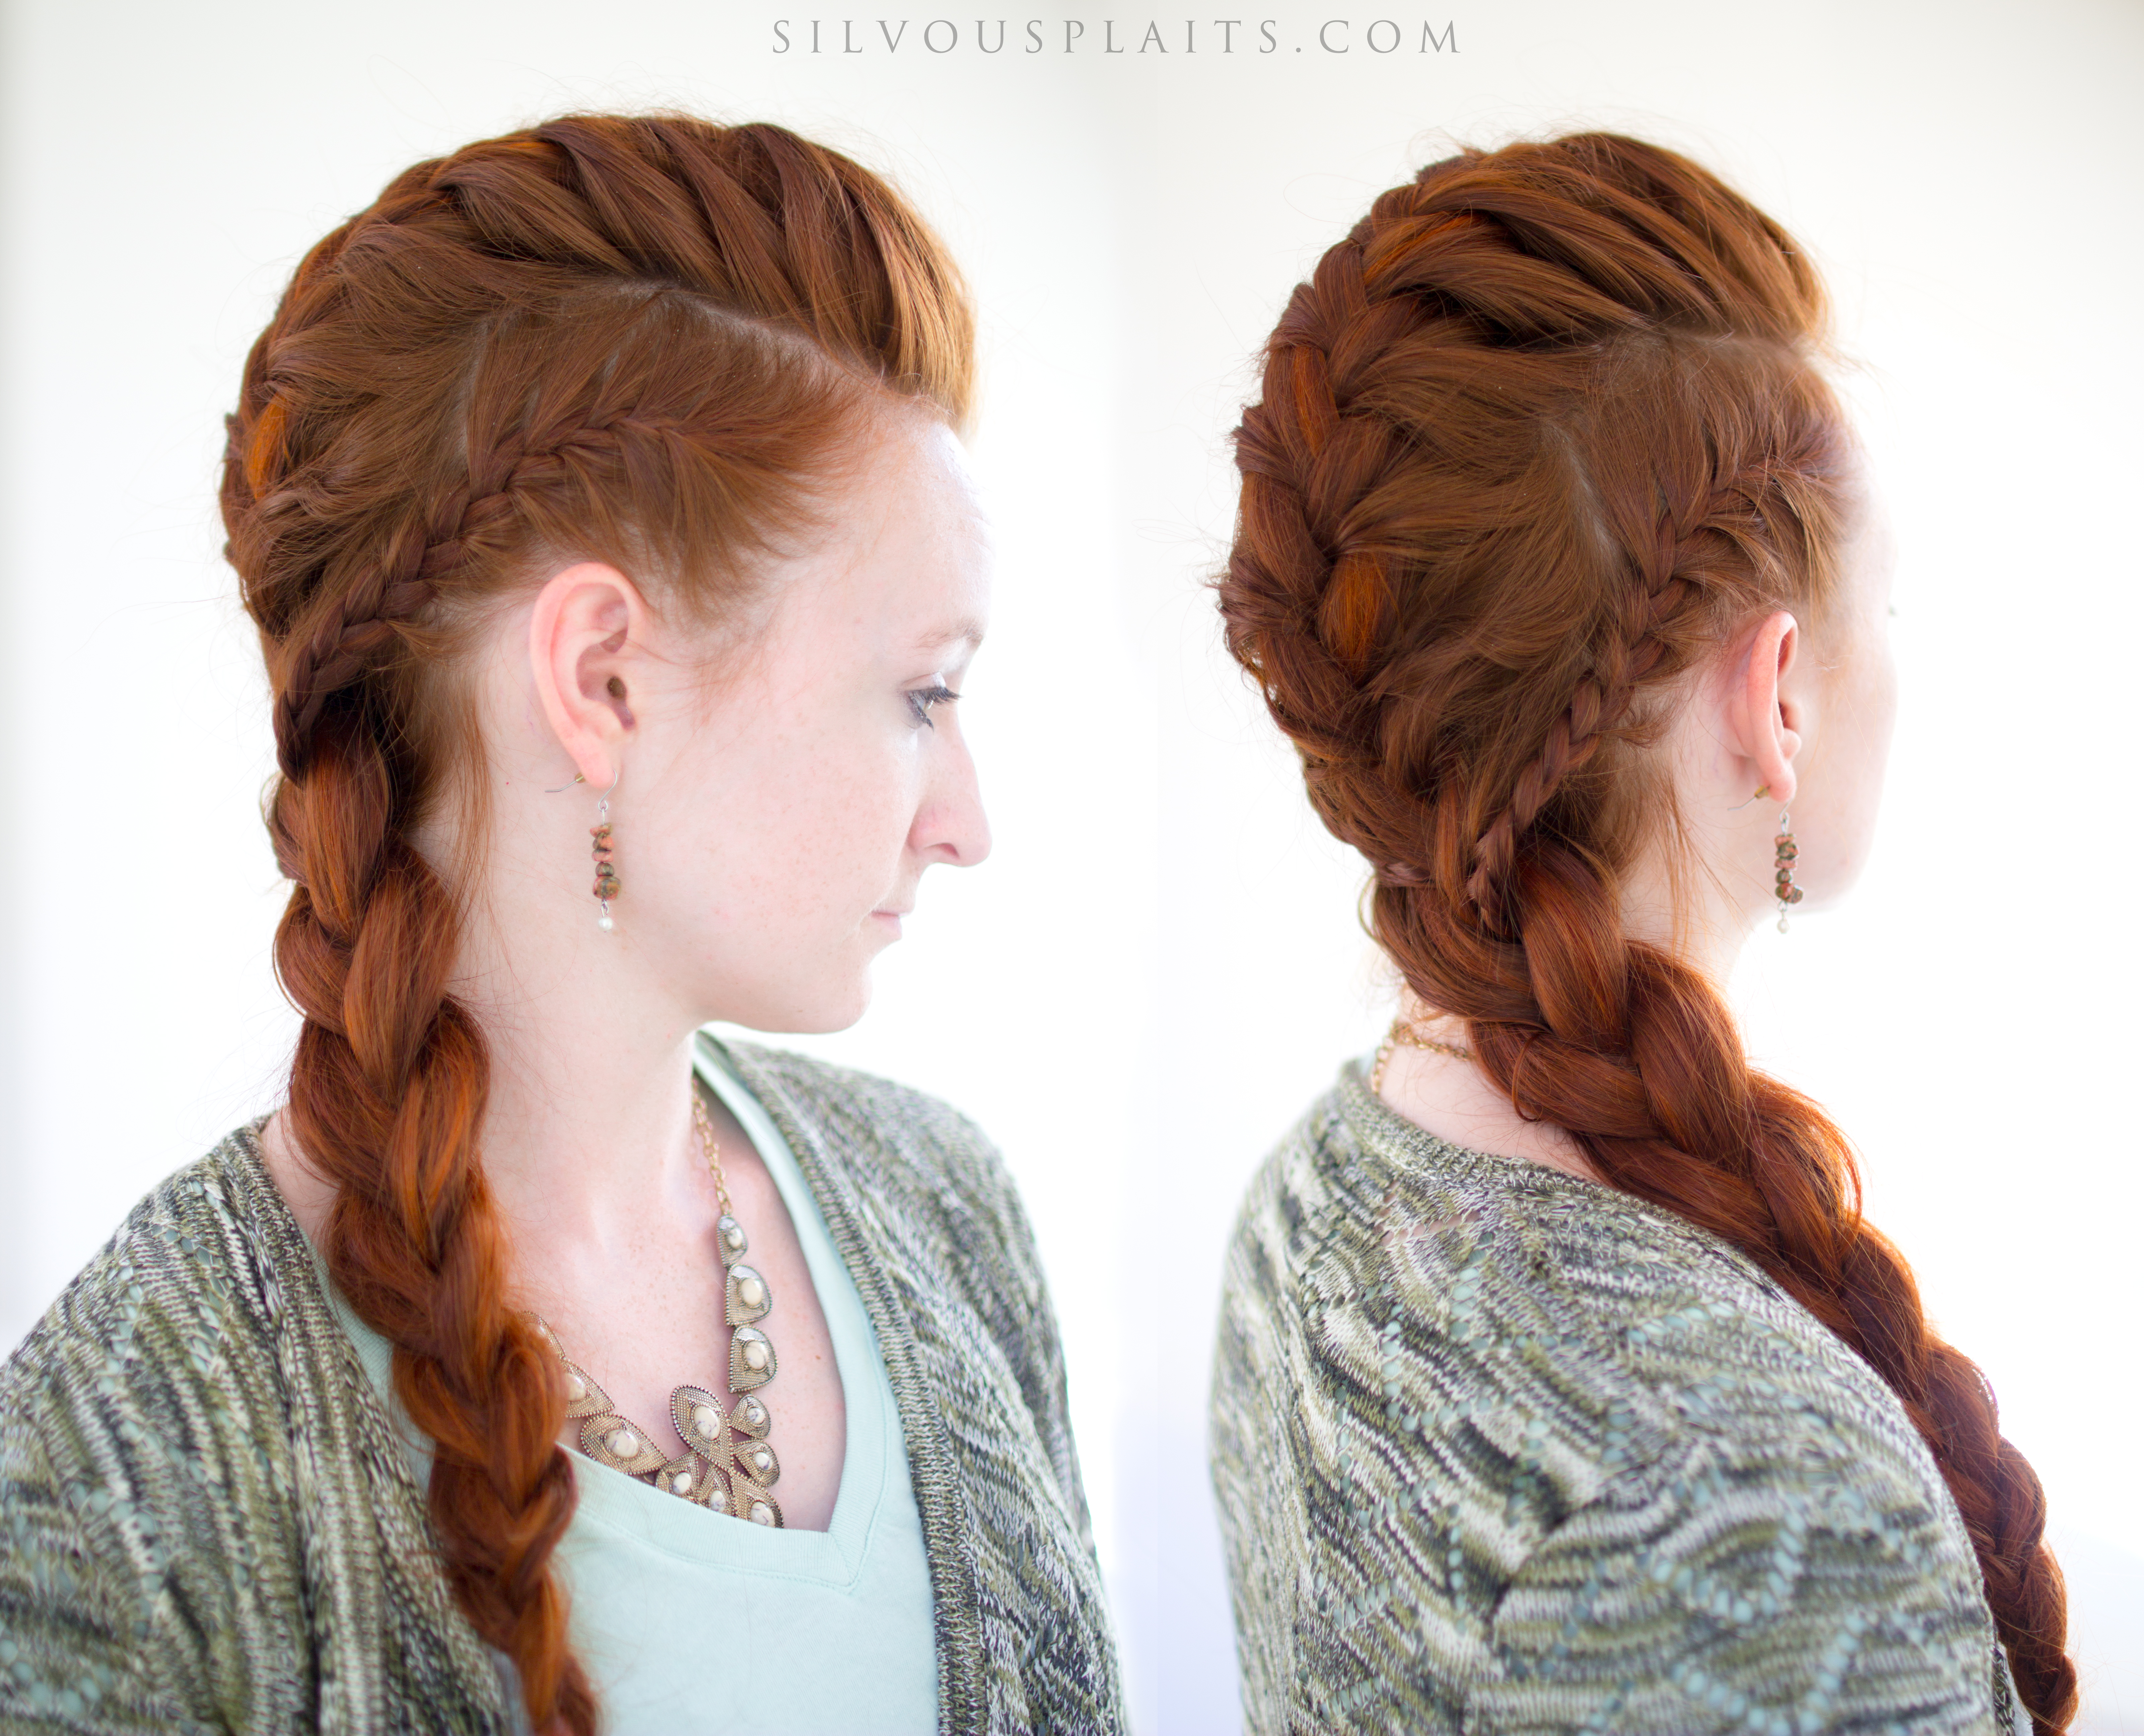 Silvousplaits hairstyling lagerthas vikings french braid silvousplaits hairstyling lagerthas vikings french braid silvousplaits hairstyling ccuart Images